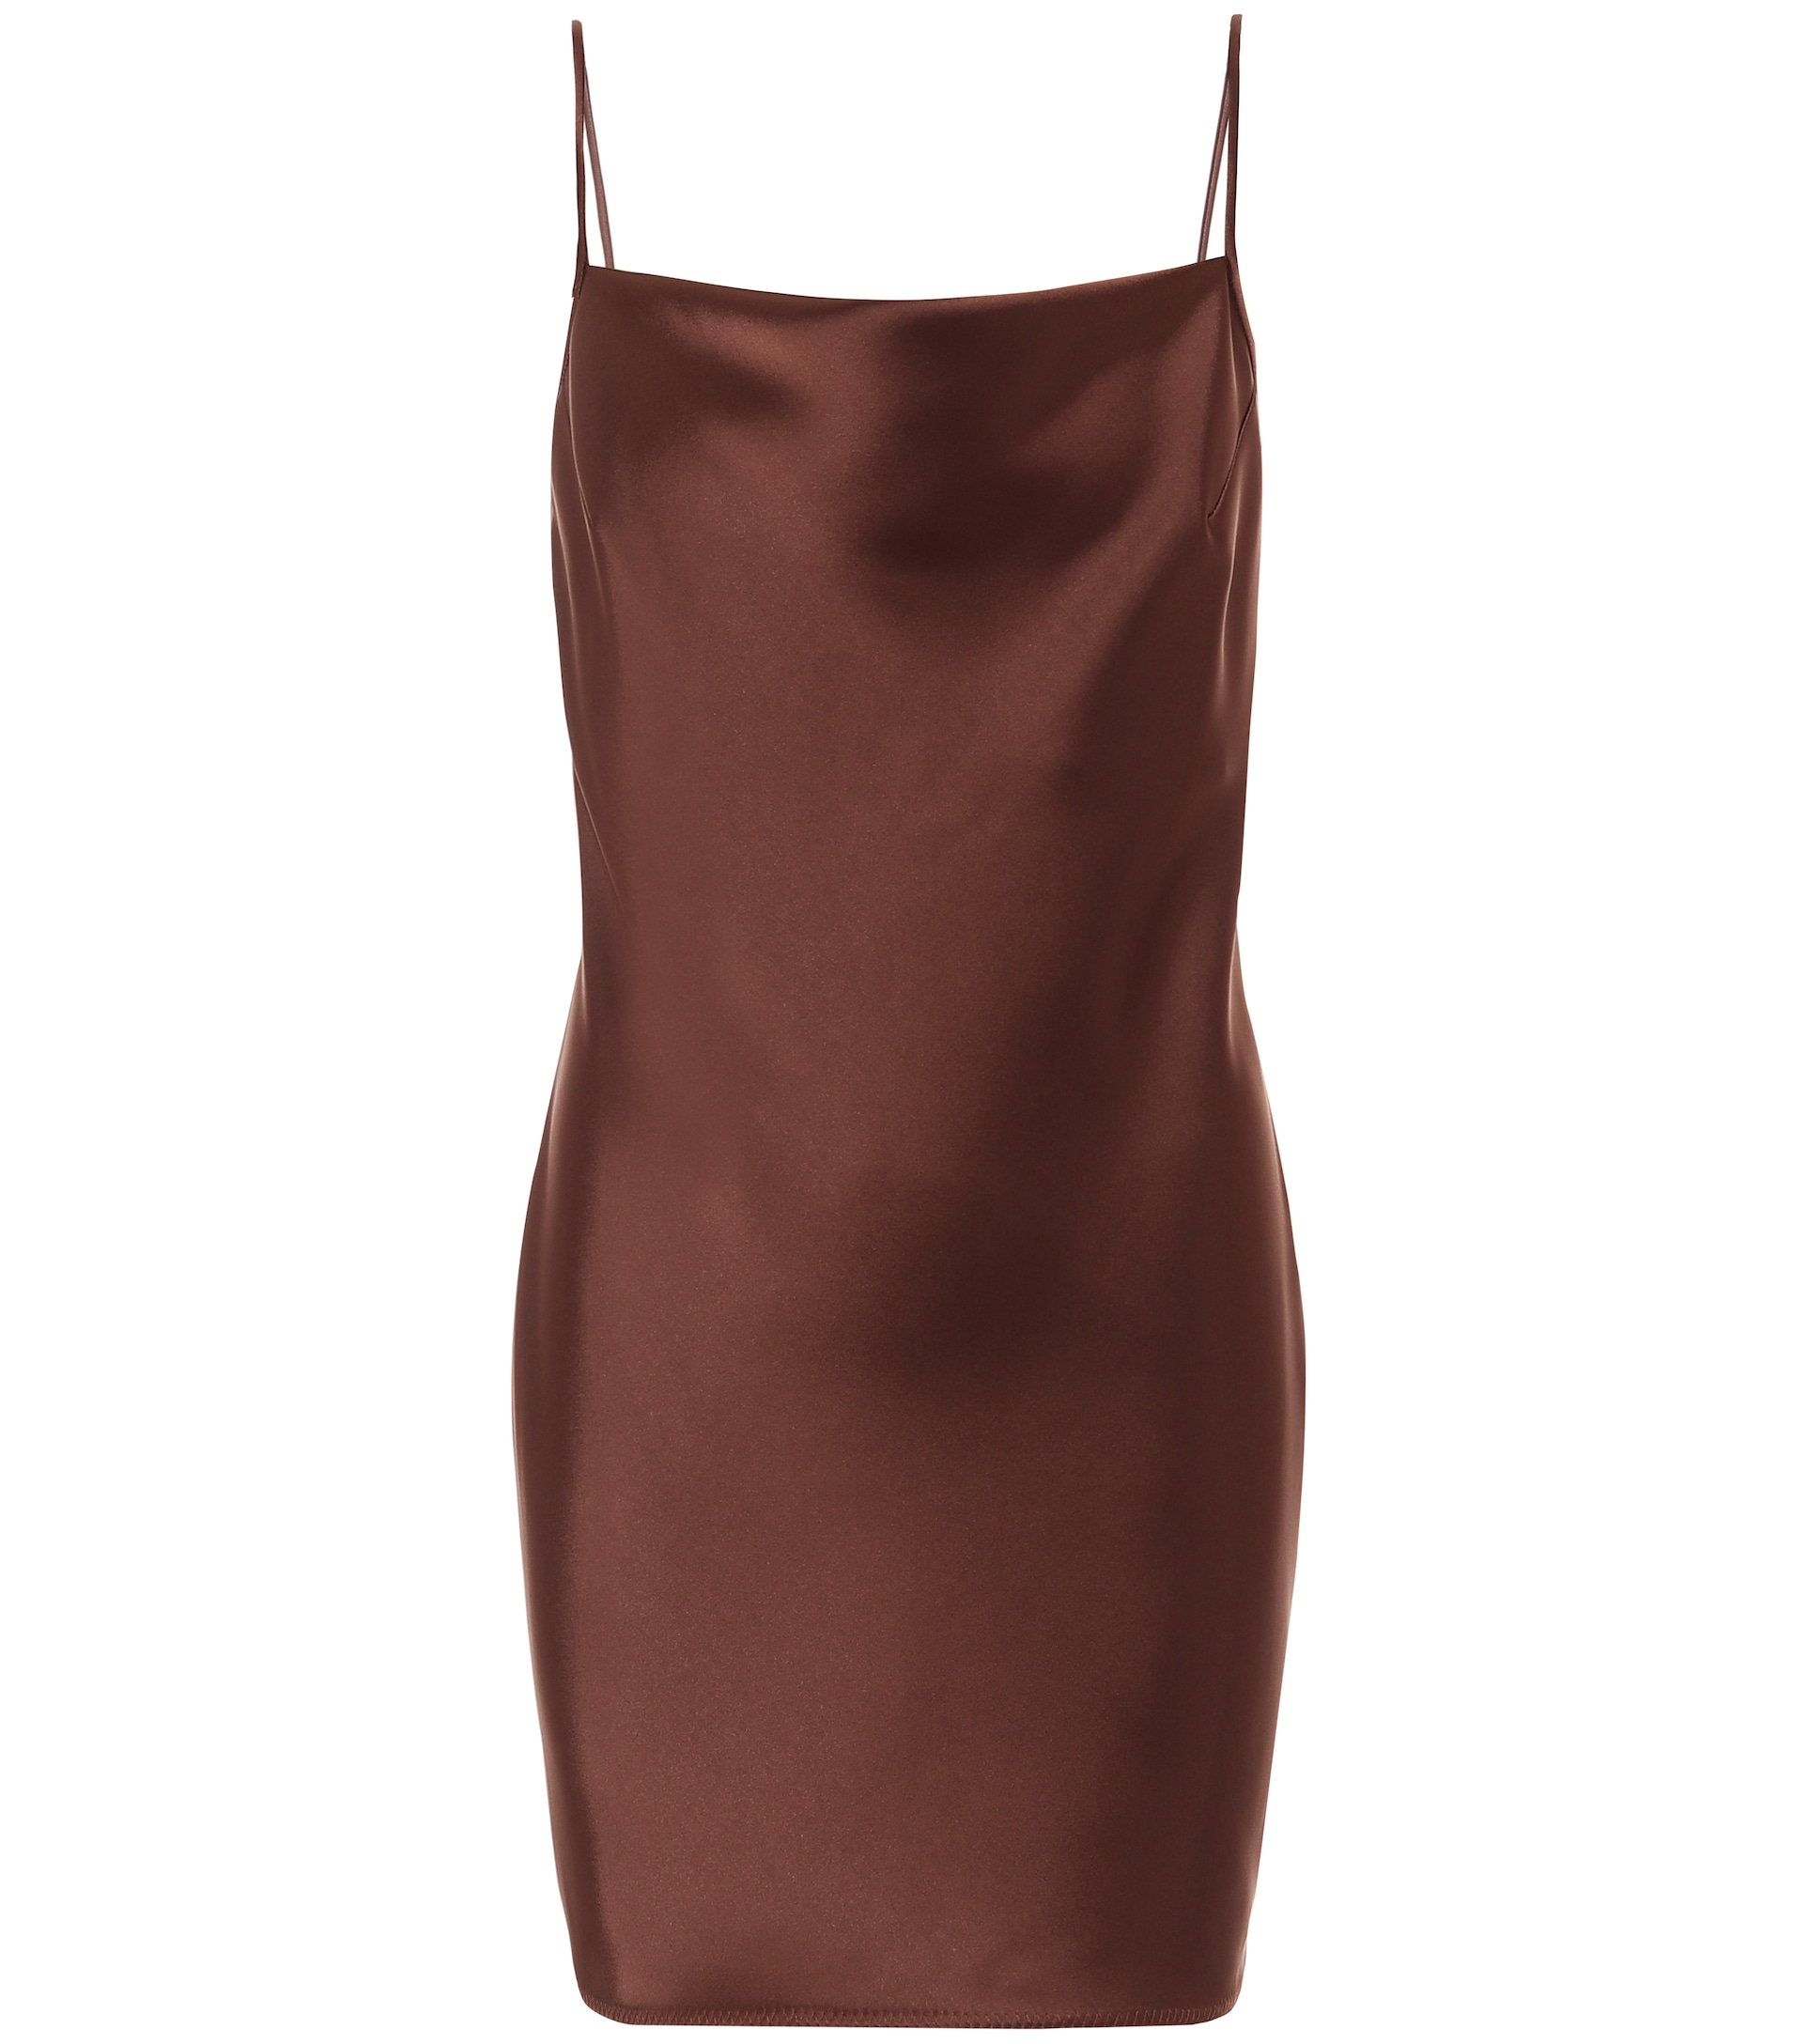 Metallic Bronze Mini Dress